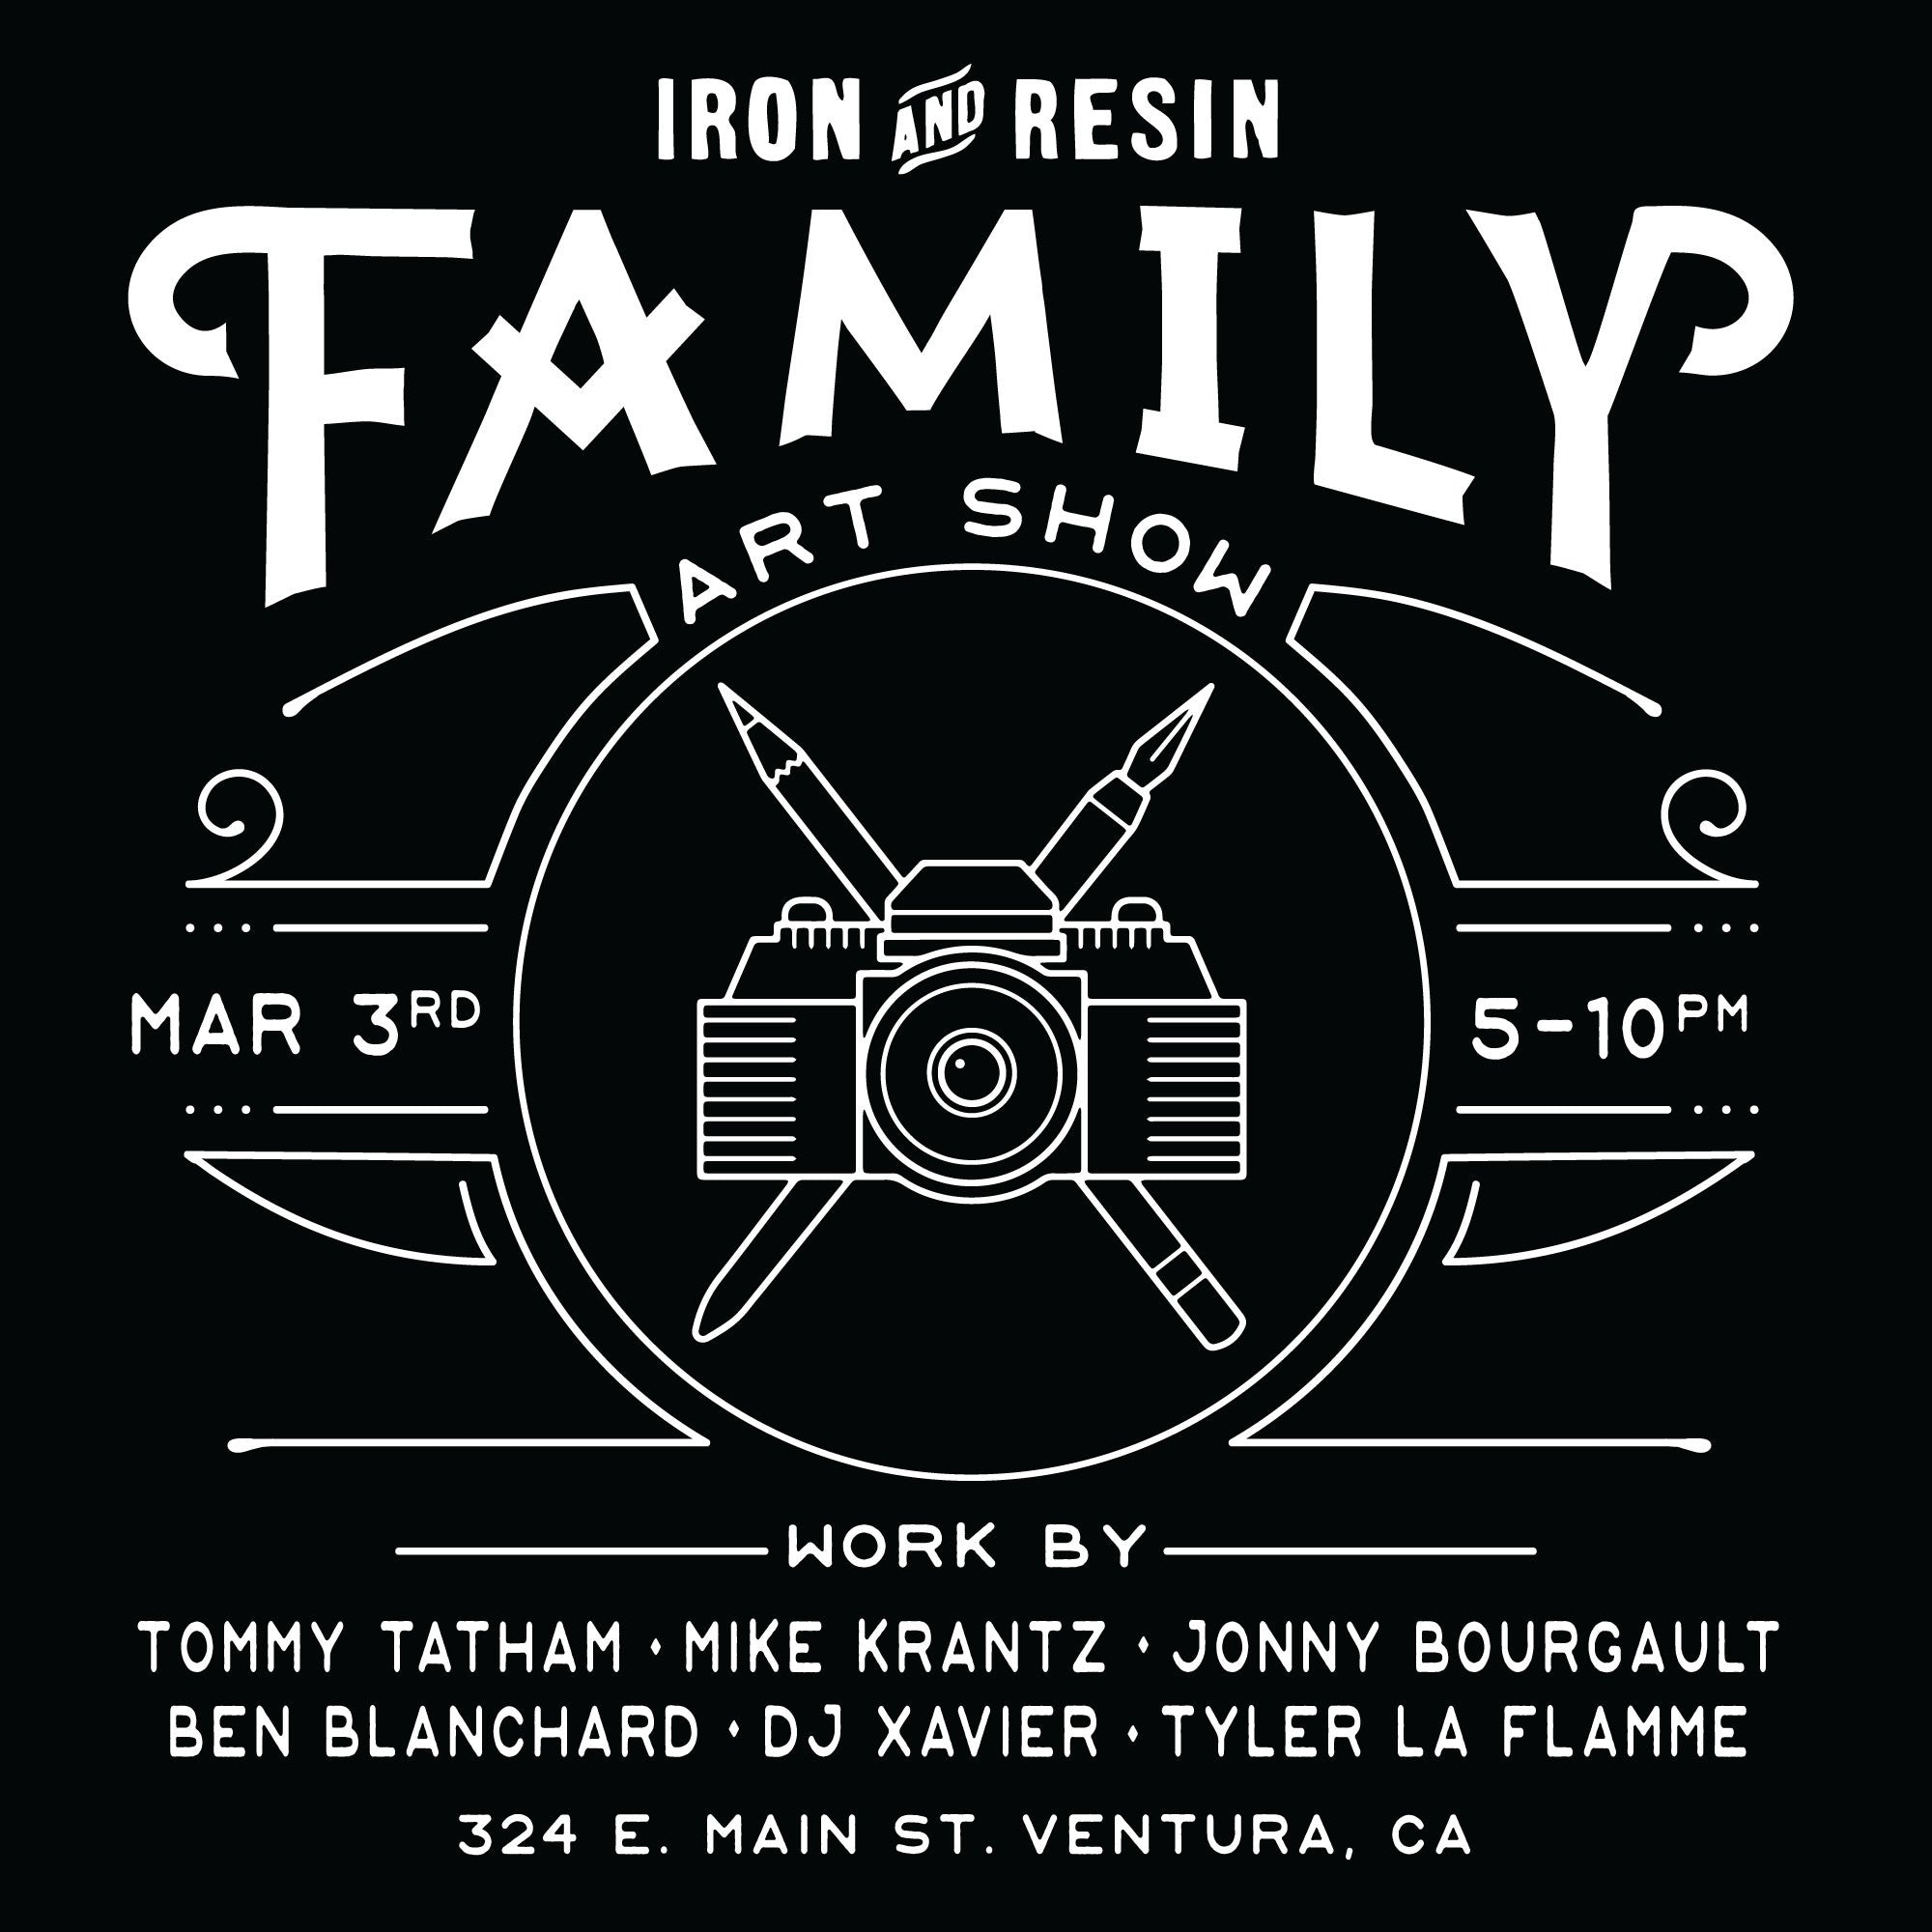 Iron & ResinFamily Art Show